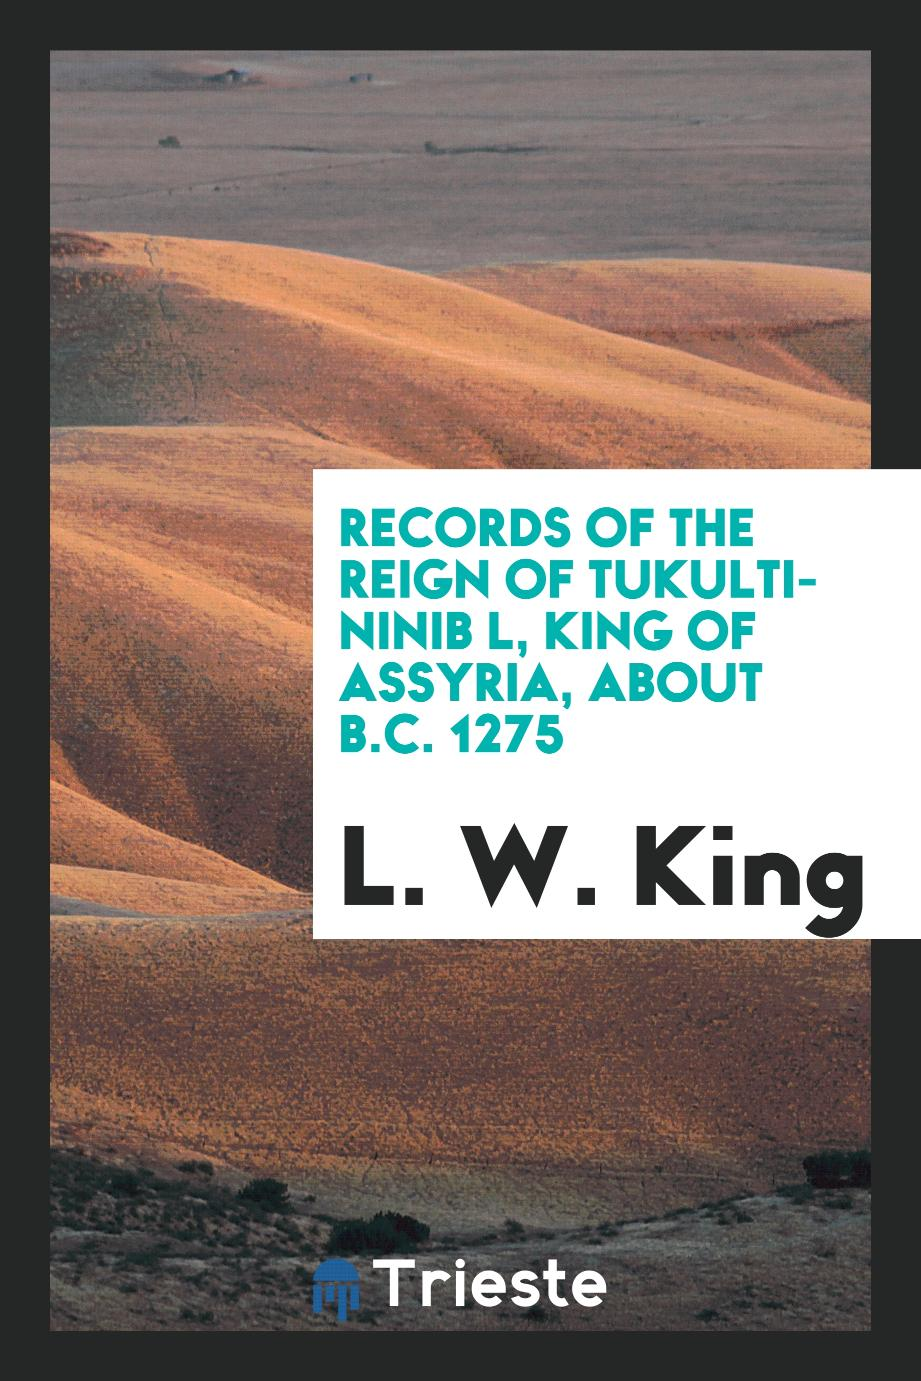 Records of the reign of Tukulti-Ninib l, King of Assyria, about B.C. 1275